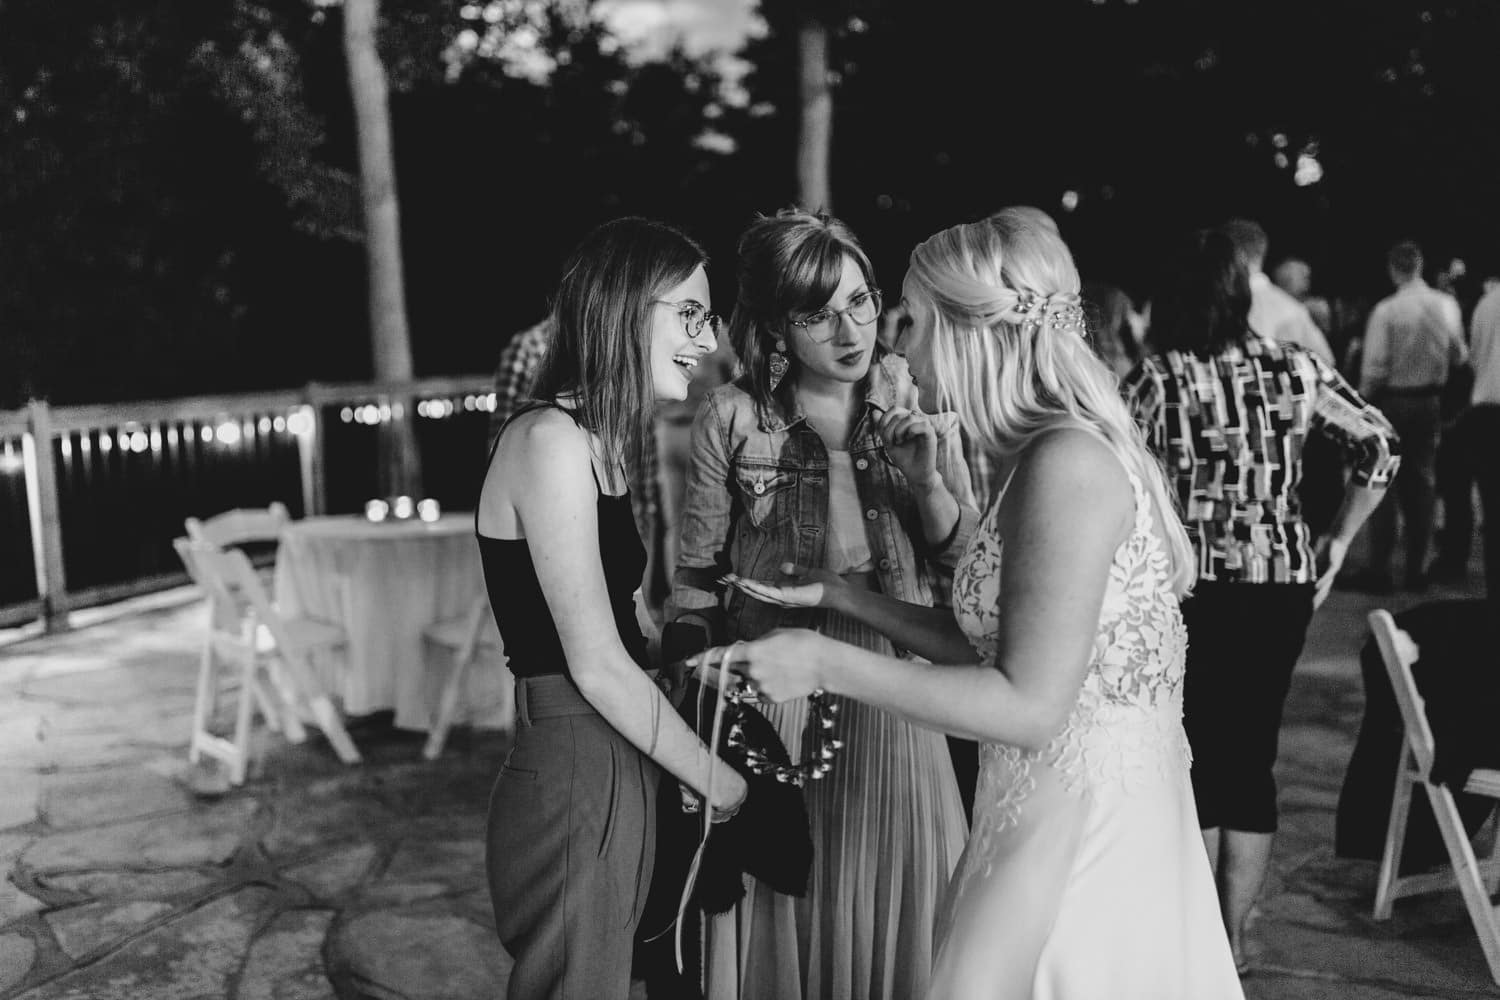 bride chats with guests at outdoor wedding reception